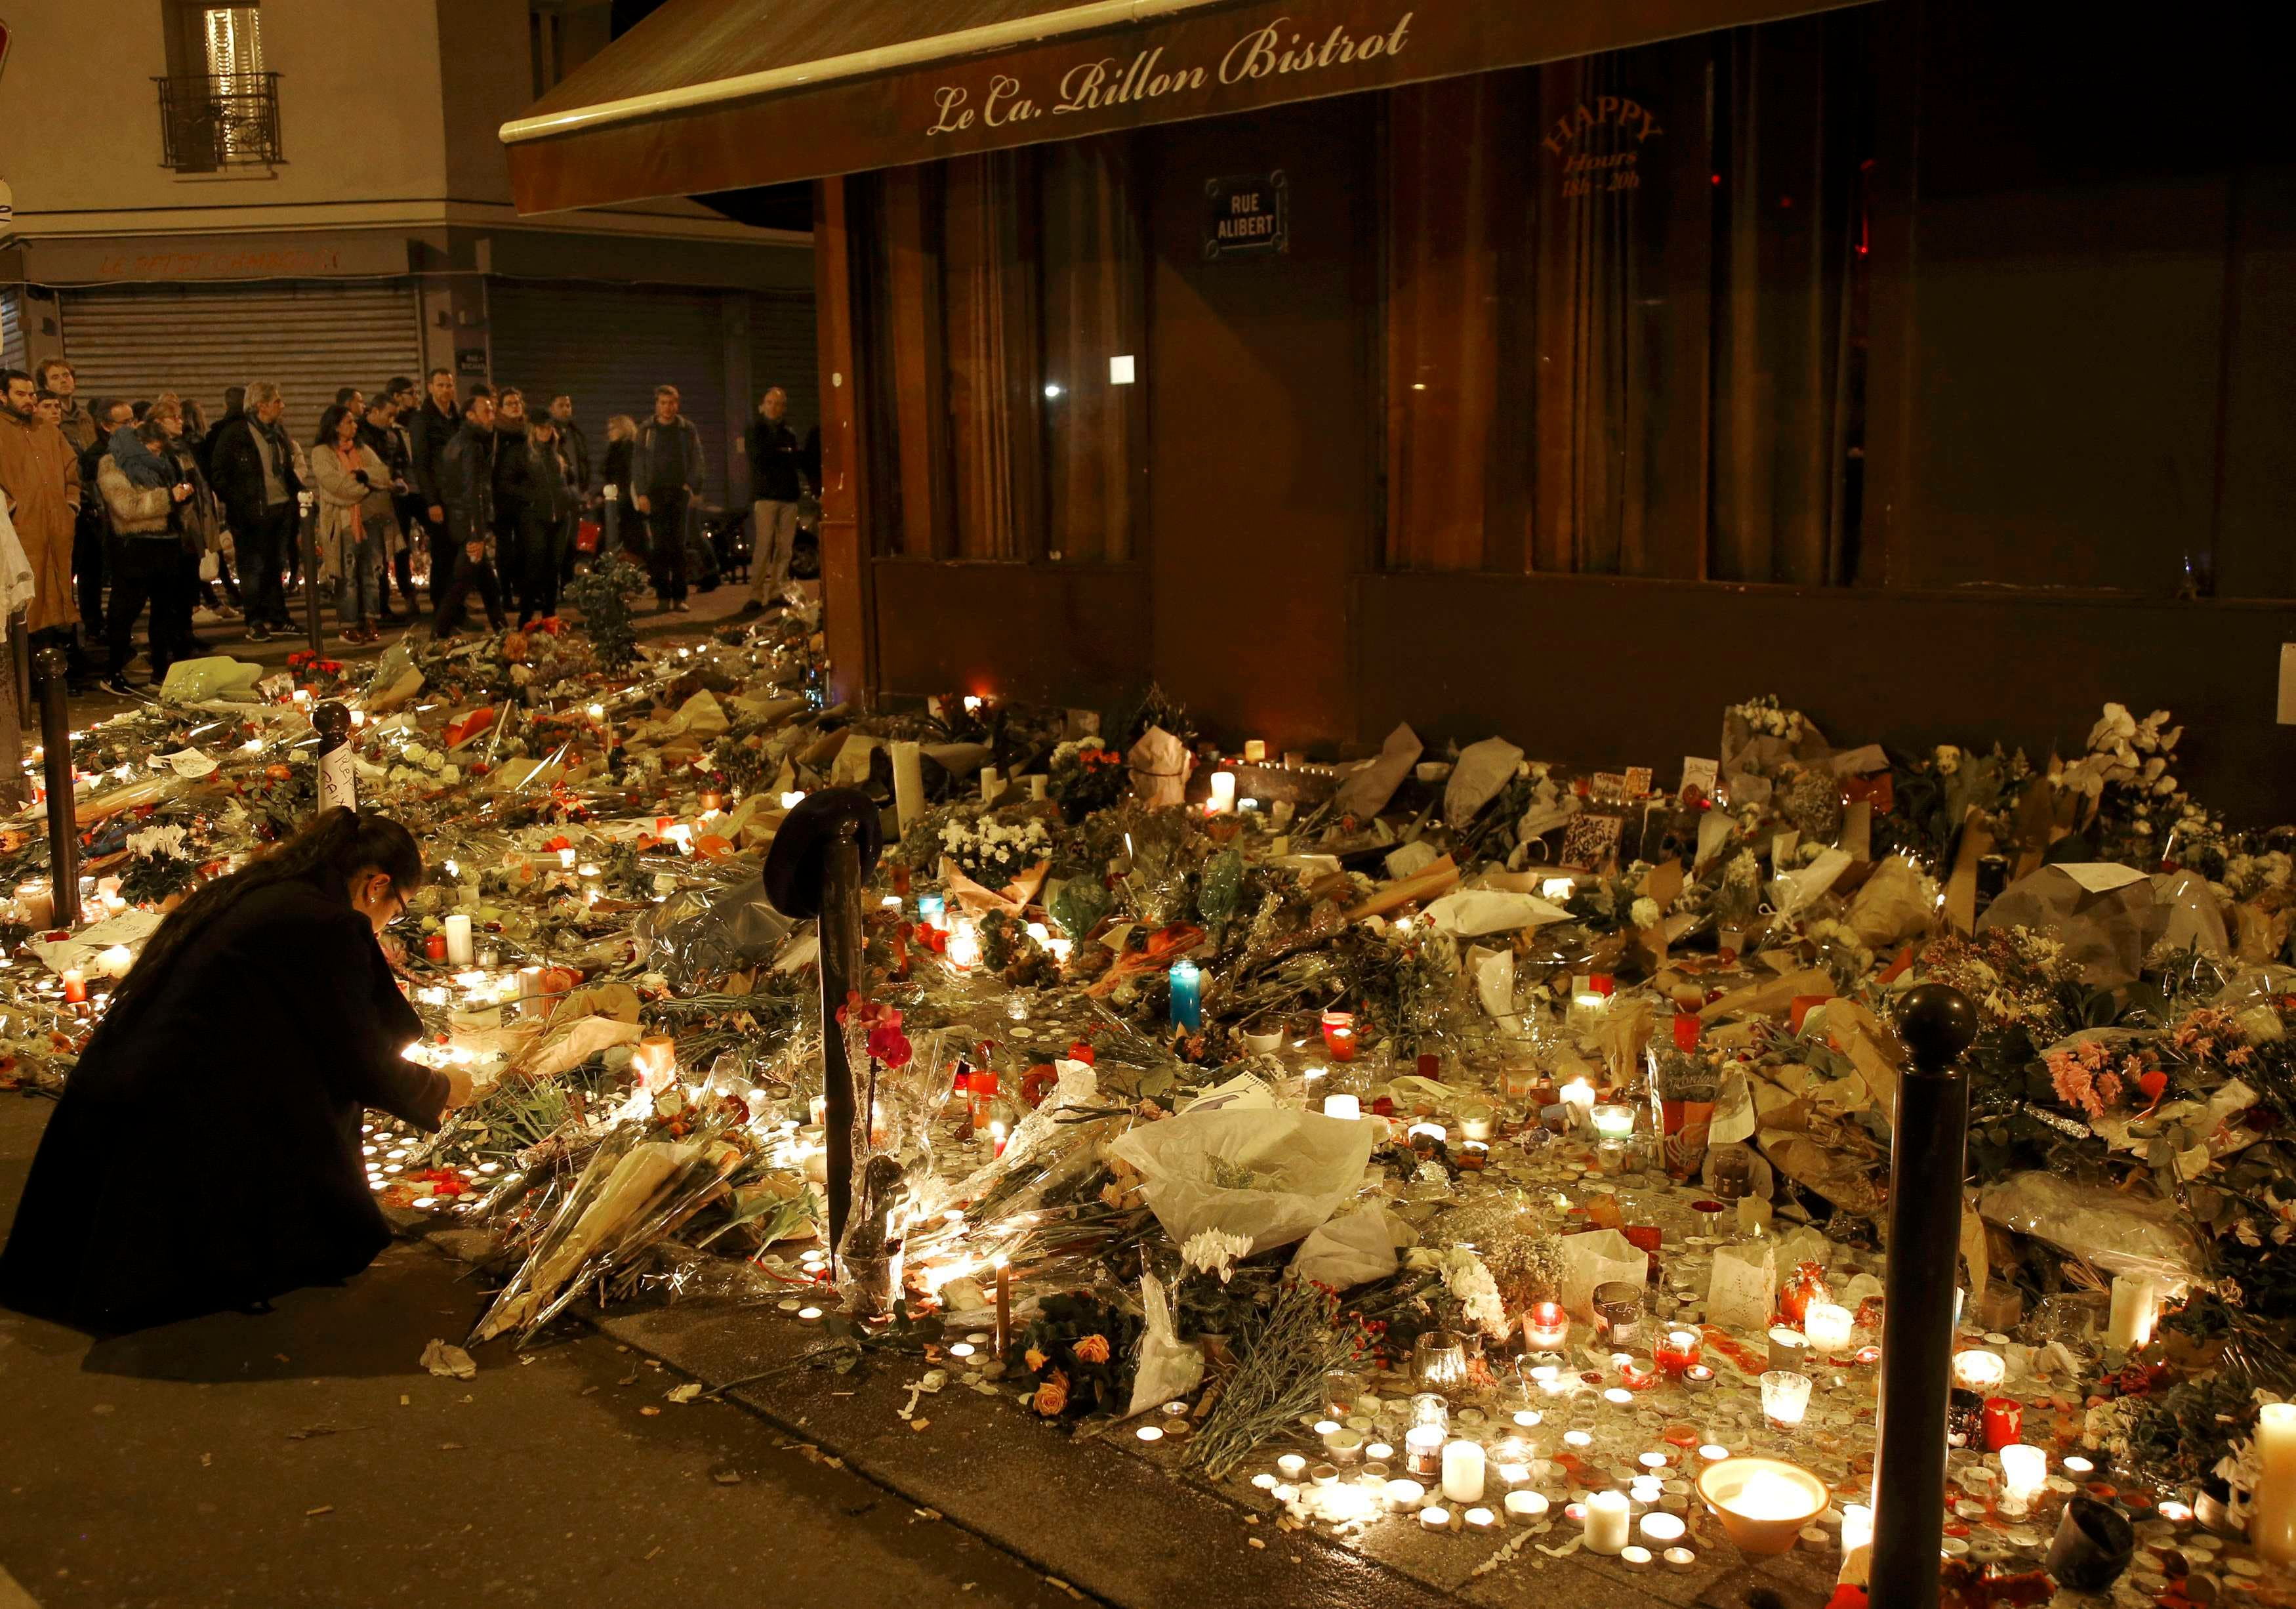 People gather outside Le Carillon restaurant, one of the attack sites in Paris, November 15, 2015. REUTERS/Jacky Naegelen